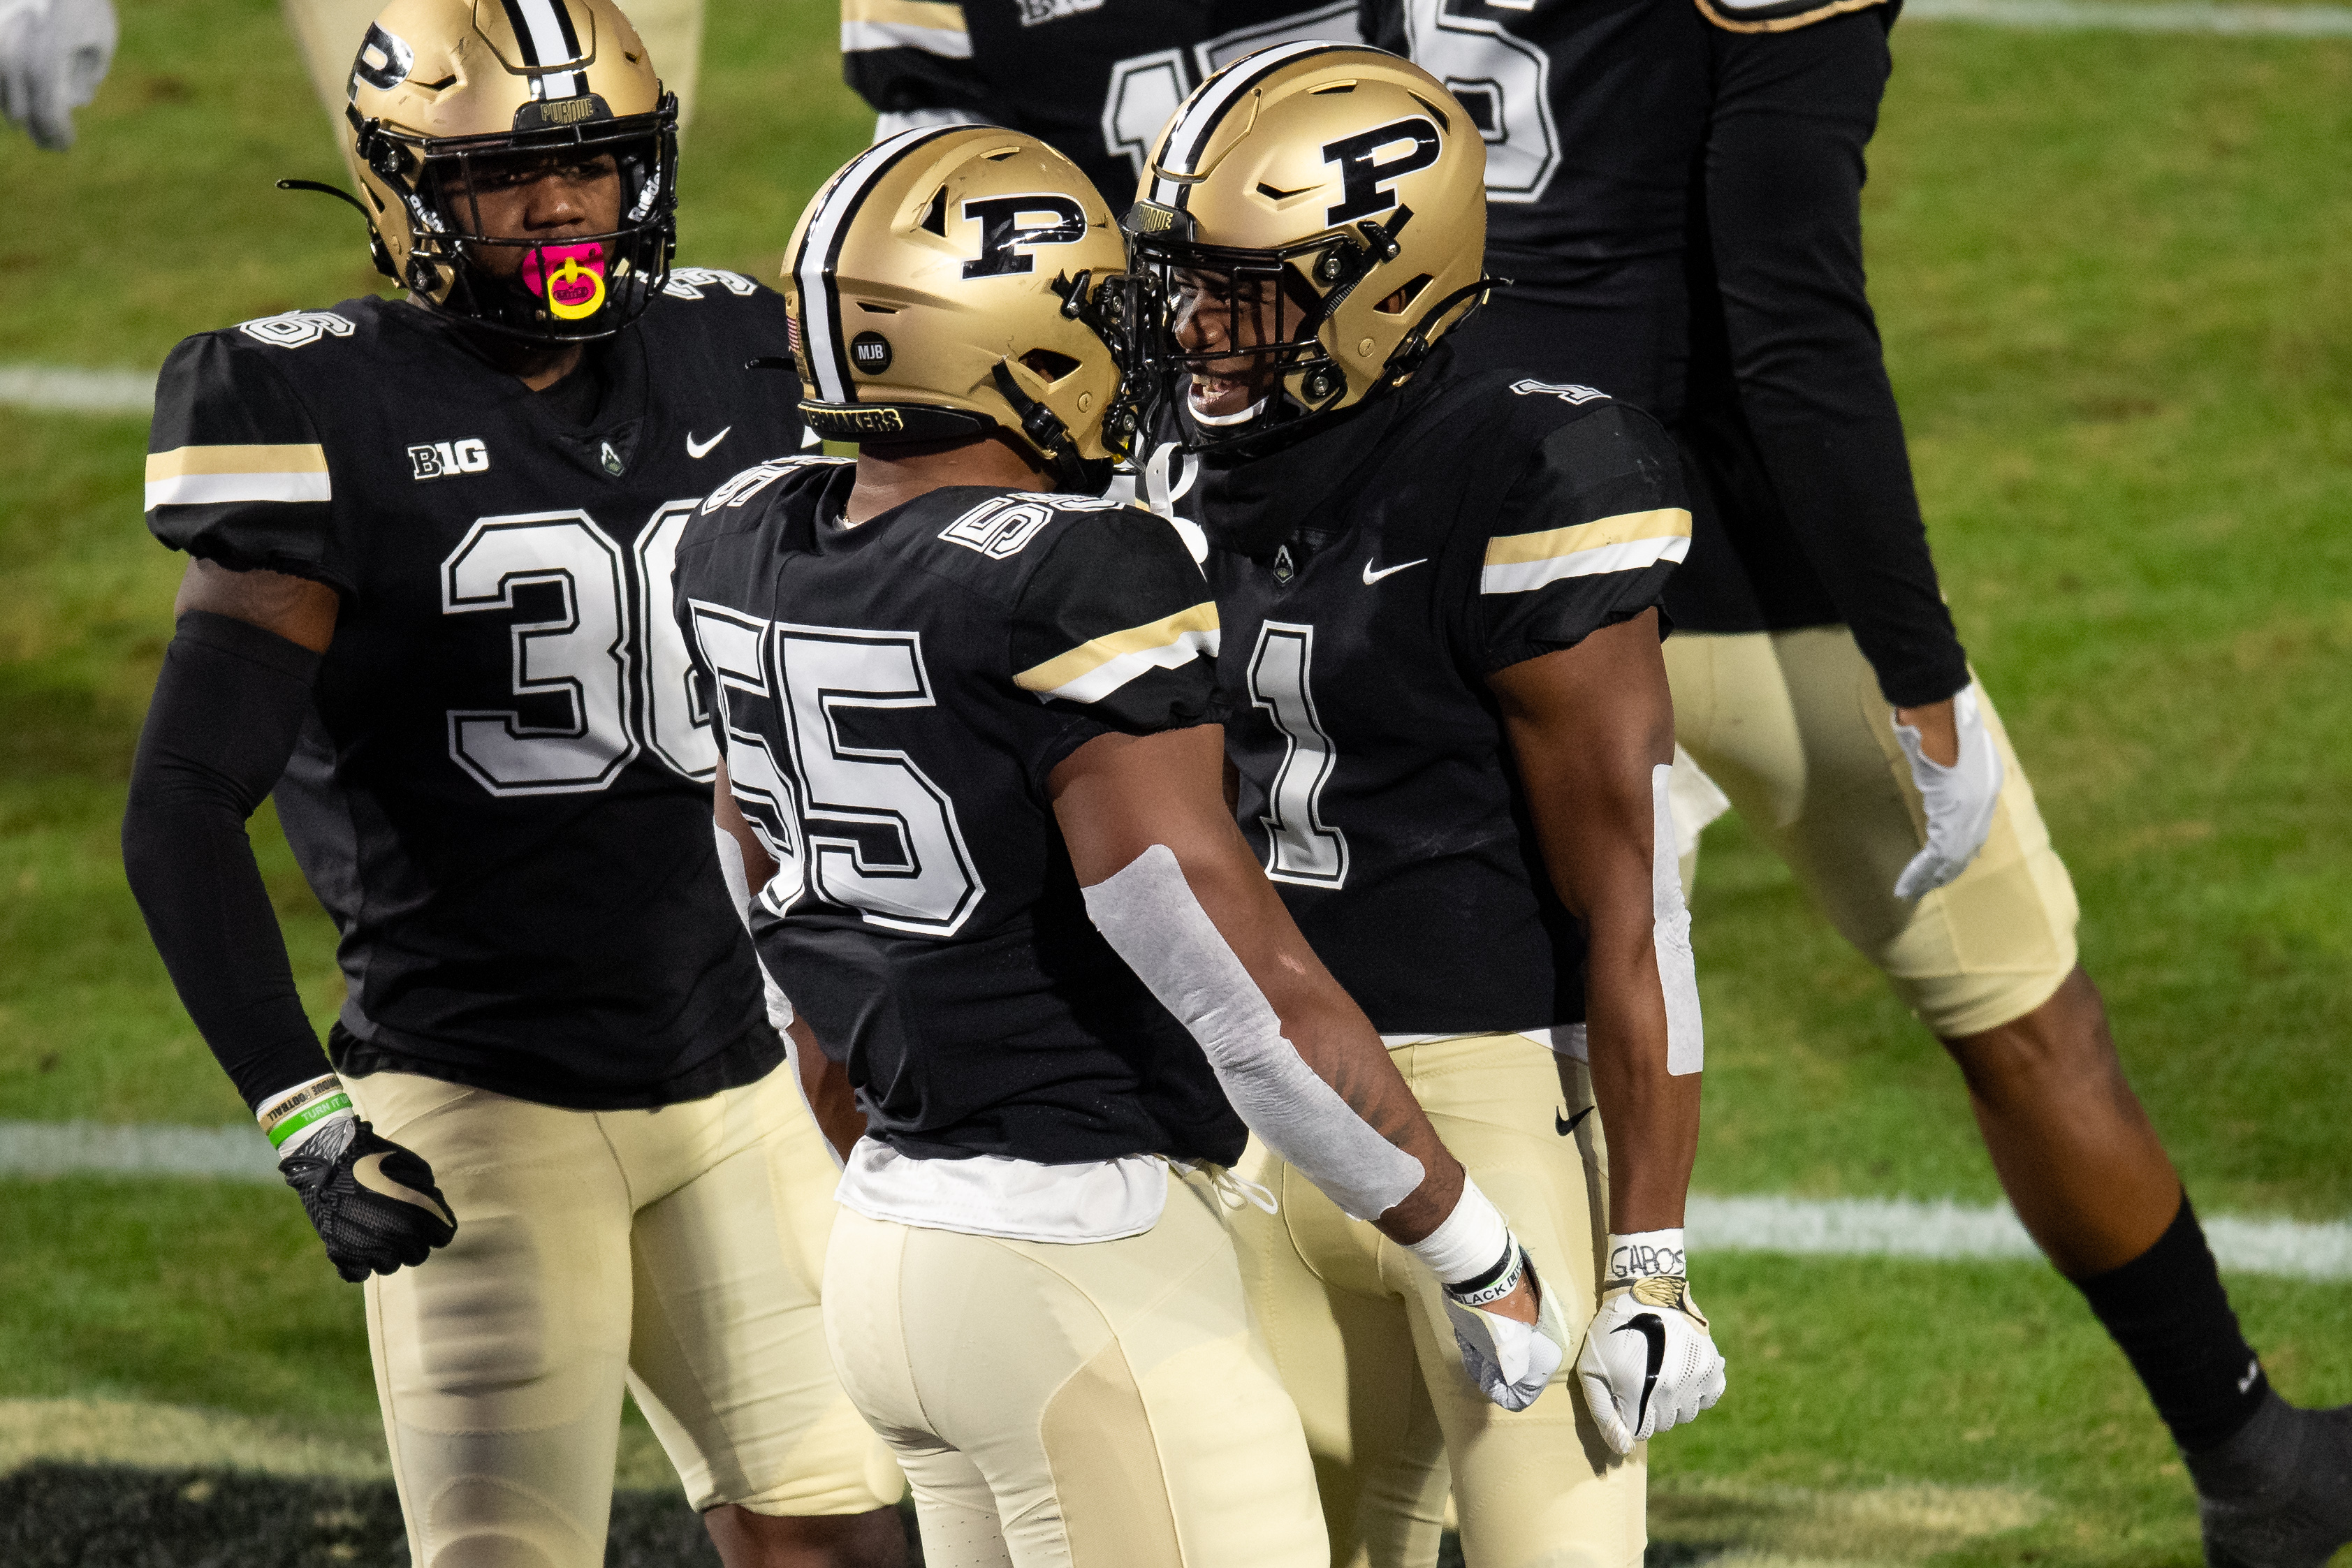 COLLEGE FOOTBALL: NOV 14 Northwestern at Purdue